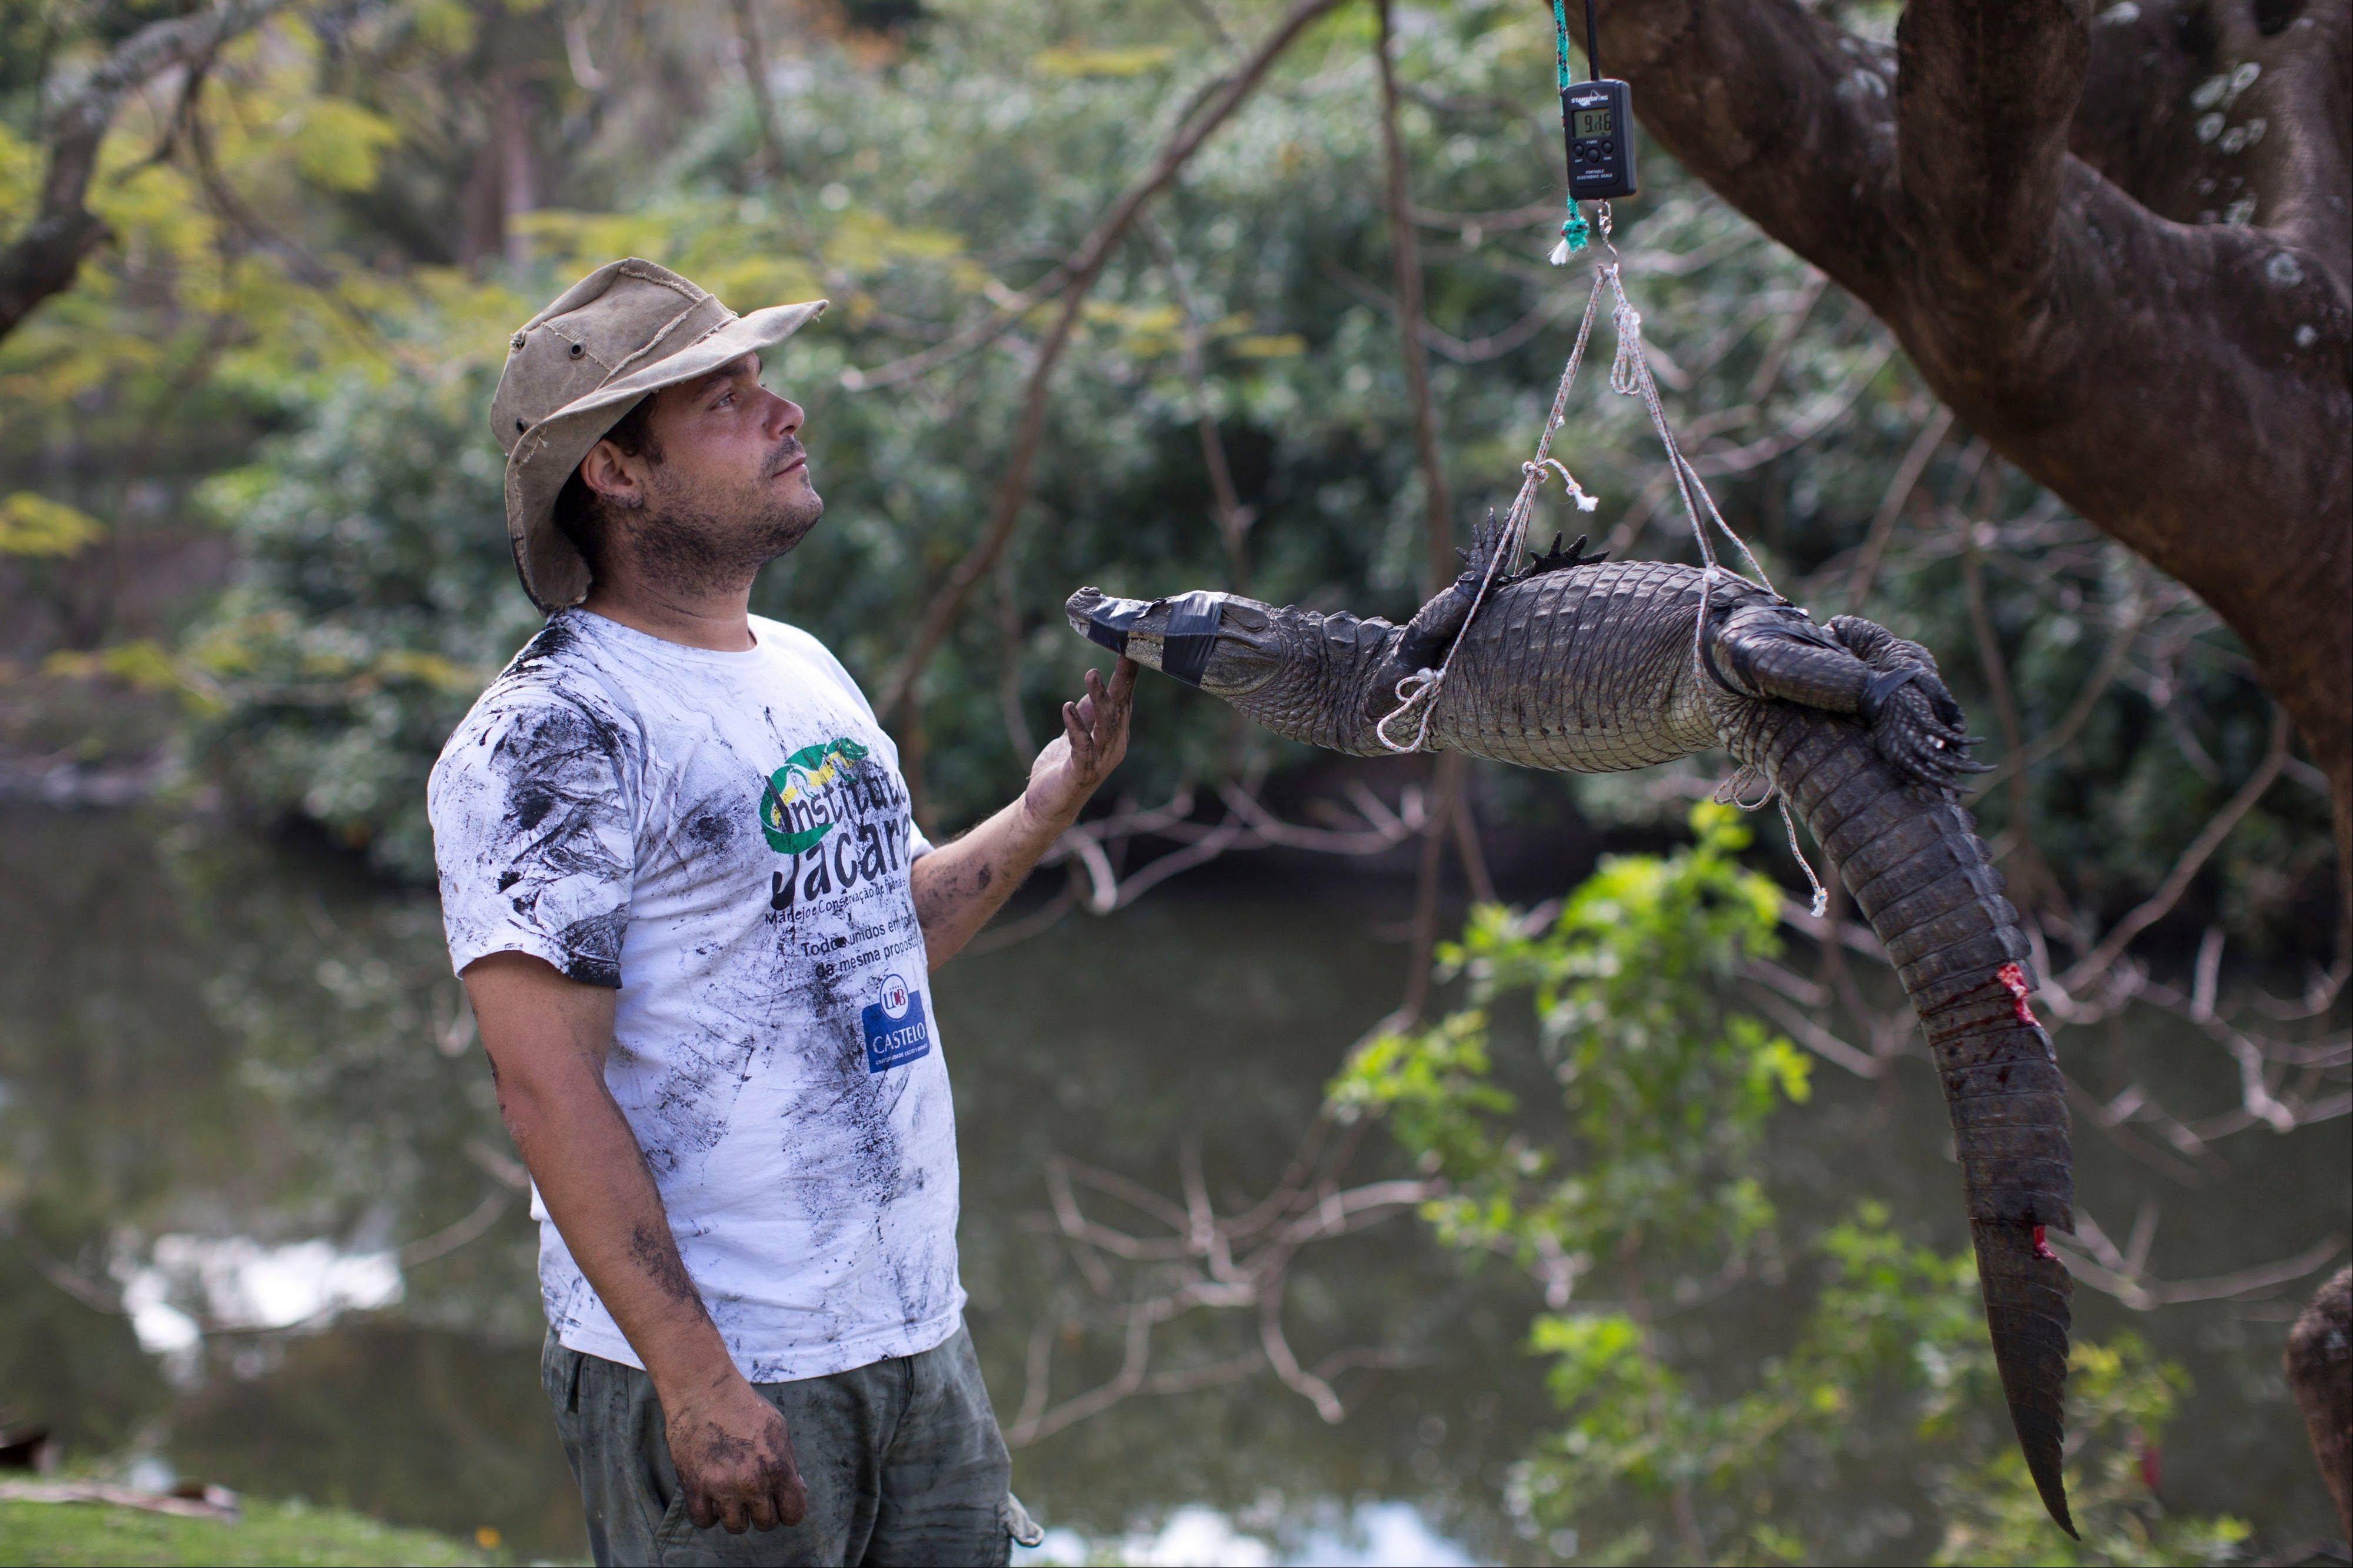 Ecology professor Ricardo Freitas weighs a broad-snouted caiman before releasing it back in the water channel in the affluent Recreio dos Bandeirantes suburb of Rio de Janeiro, Brazil. While local caimans average about 1.5 meters (4.9 feet) long and weigh about 10 kilograms (22 pounds), older males can be up to twice as long and much heavier. Still, Freitas has been known to dive into the water to catch some with his bare hands.